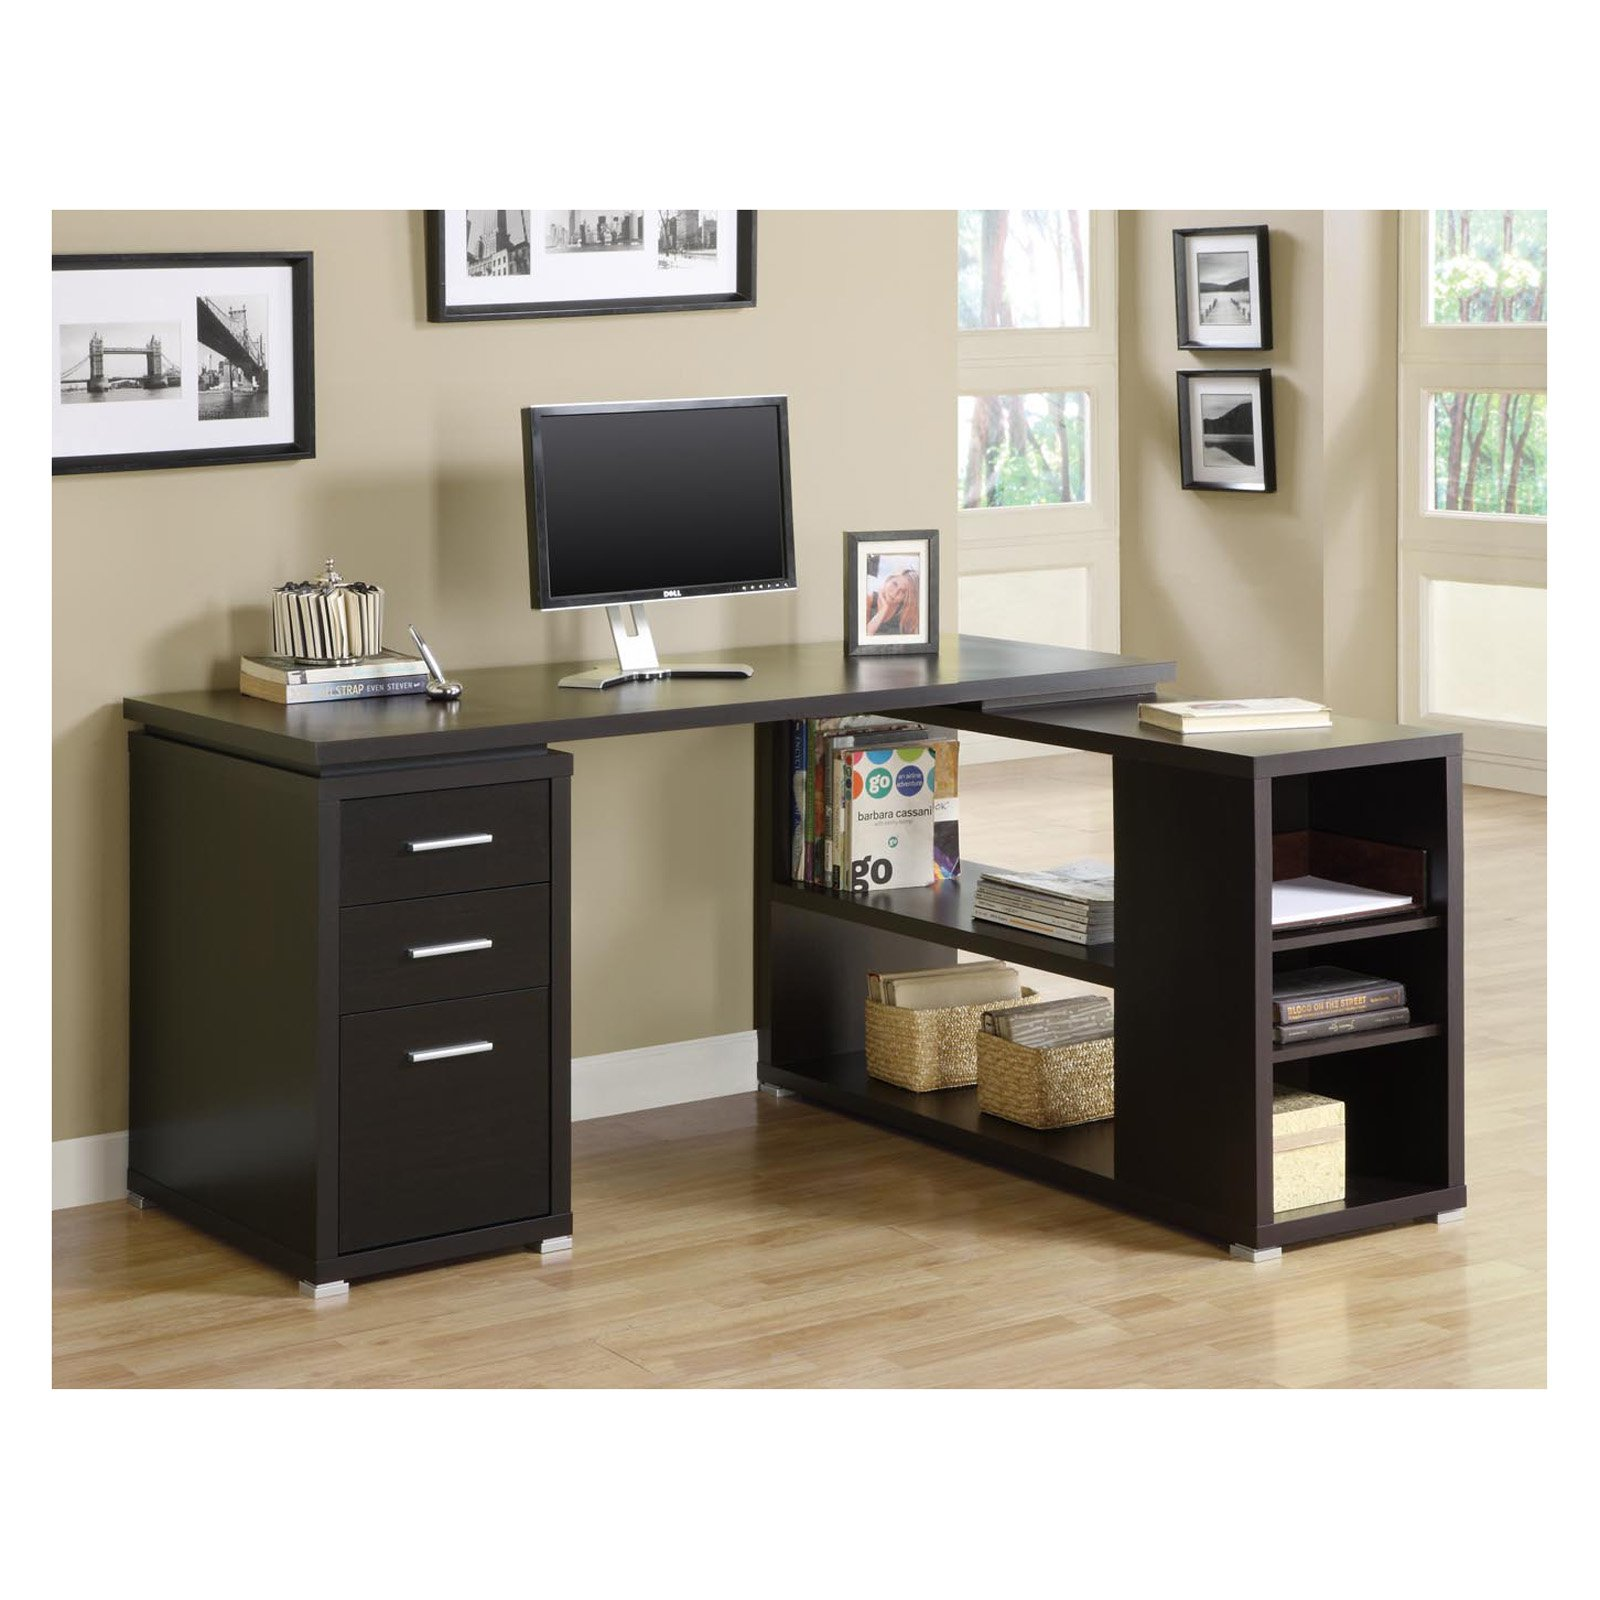 Monarch Cappuccino Hollow-Core L-Shaped Computer Desk - Walmart.com